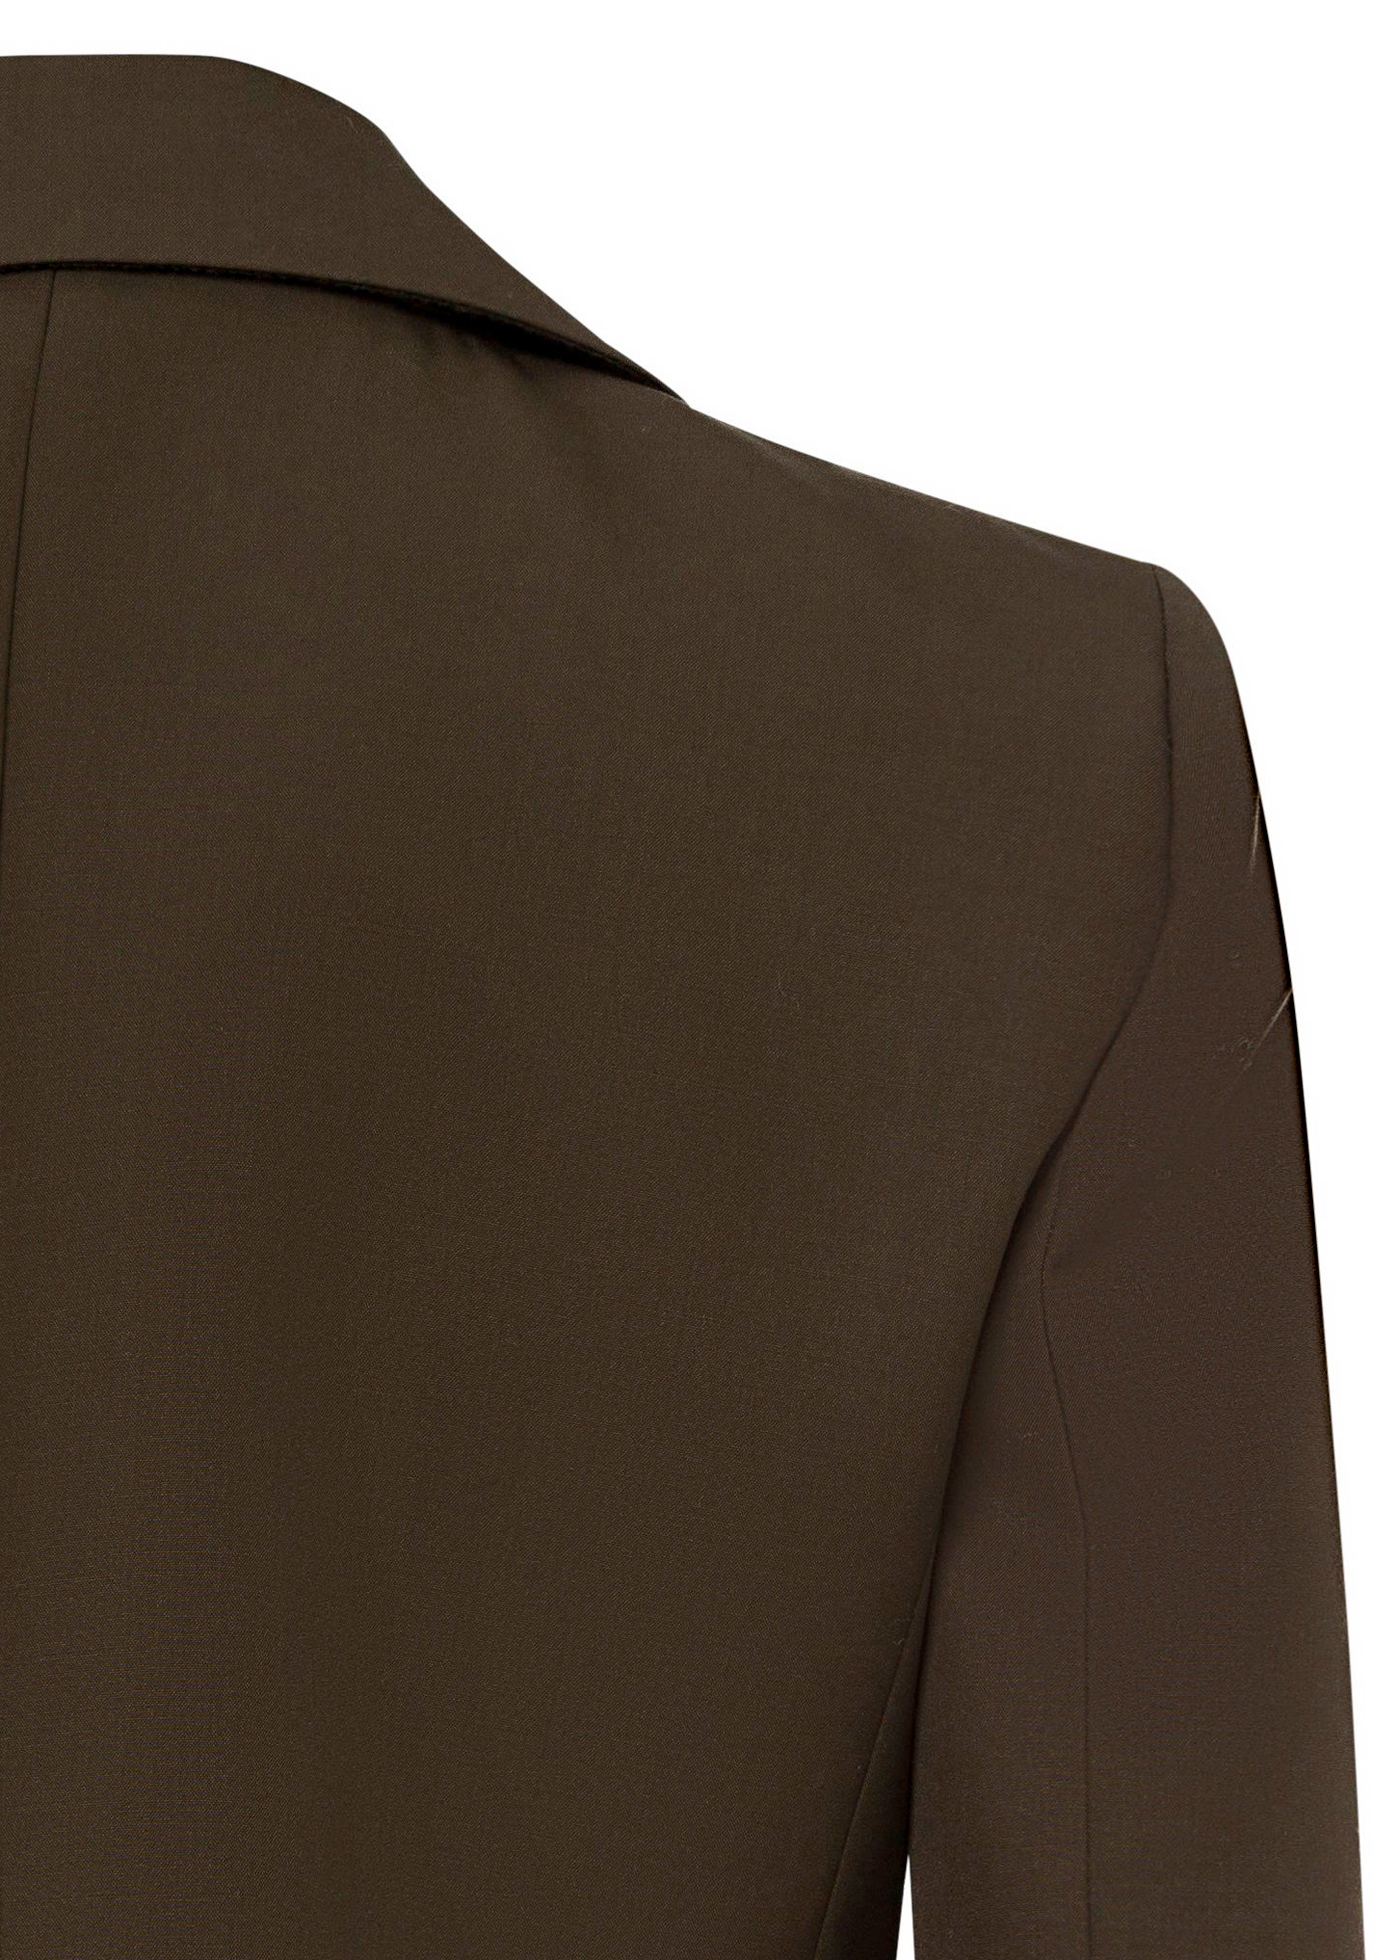 TAILORED JACKET W/ DRAPPED COLLAR image number 3